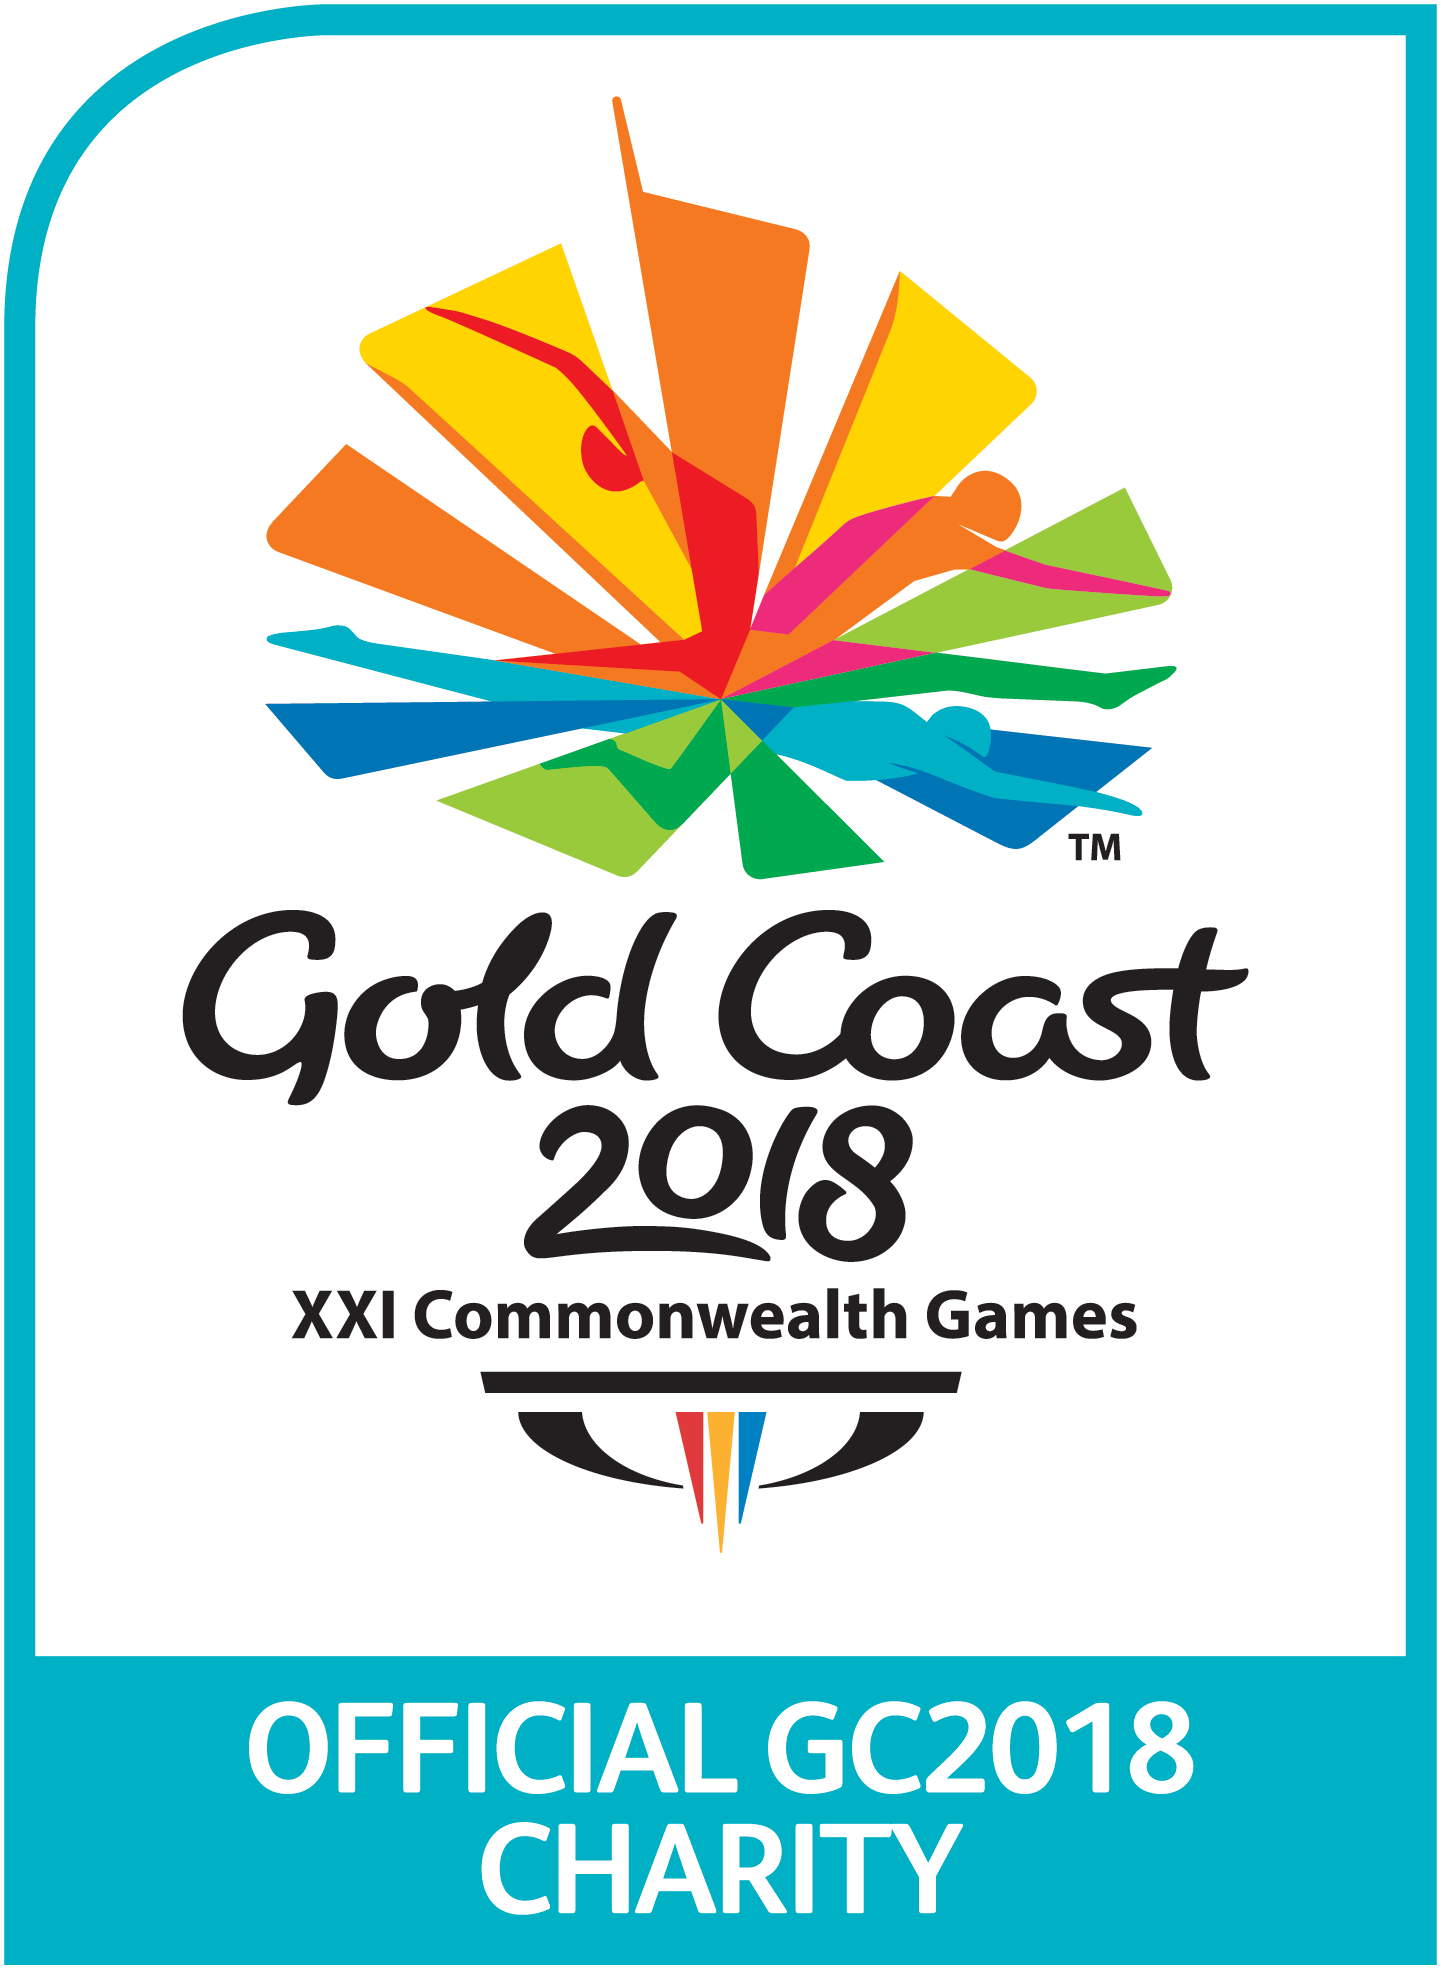 Gold Coast Community Fund named official charity of 2018 Commonwealth Games